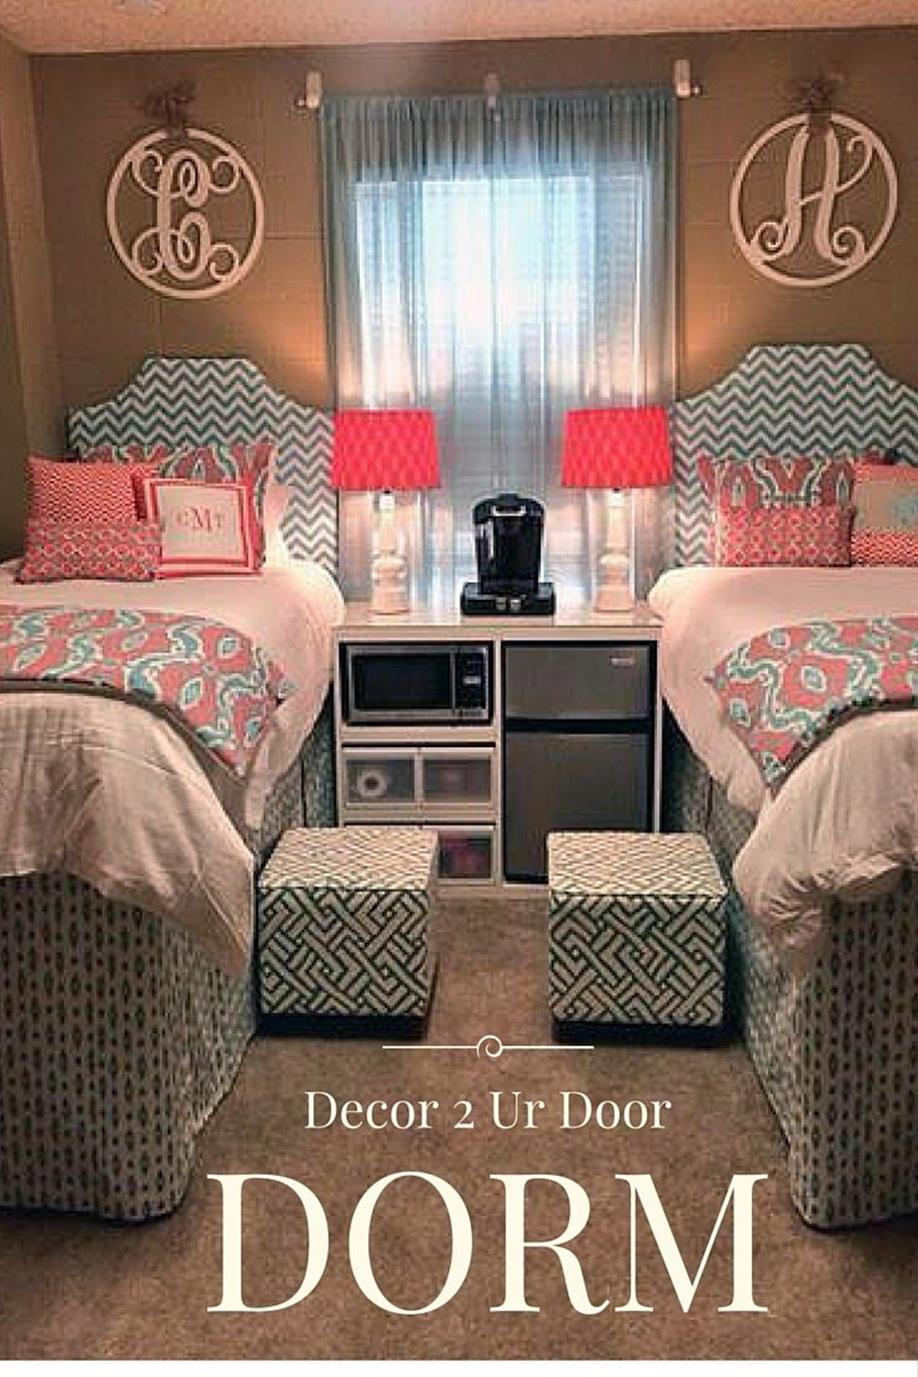 College Dorm Wall Decor For Girl 5